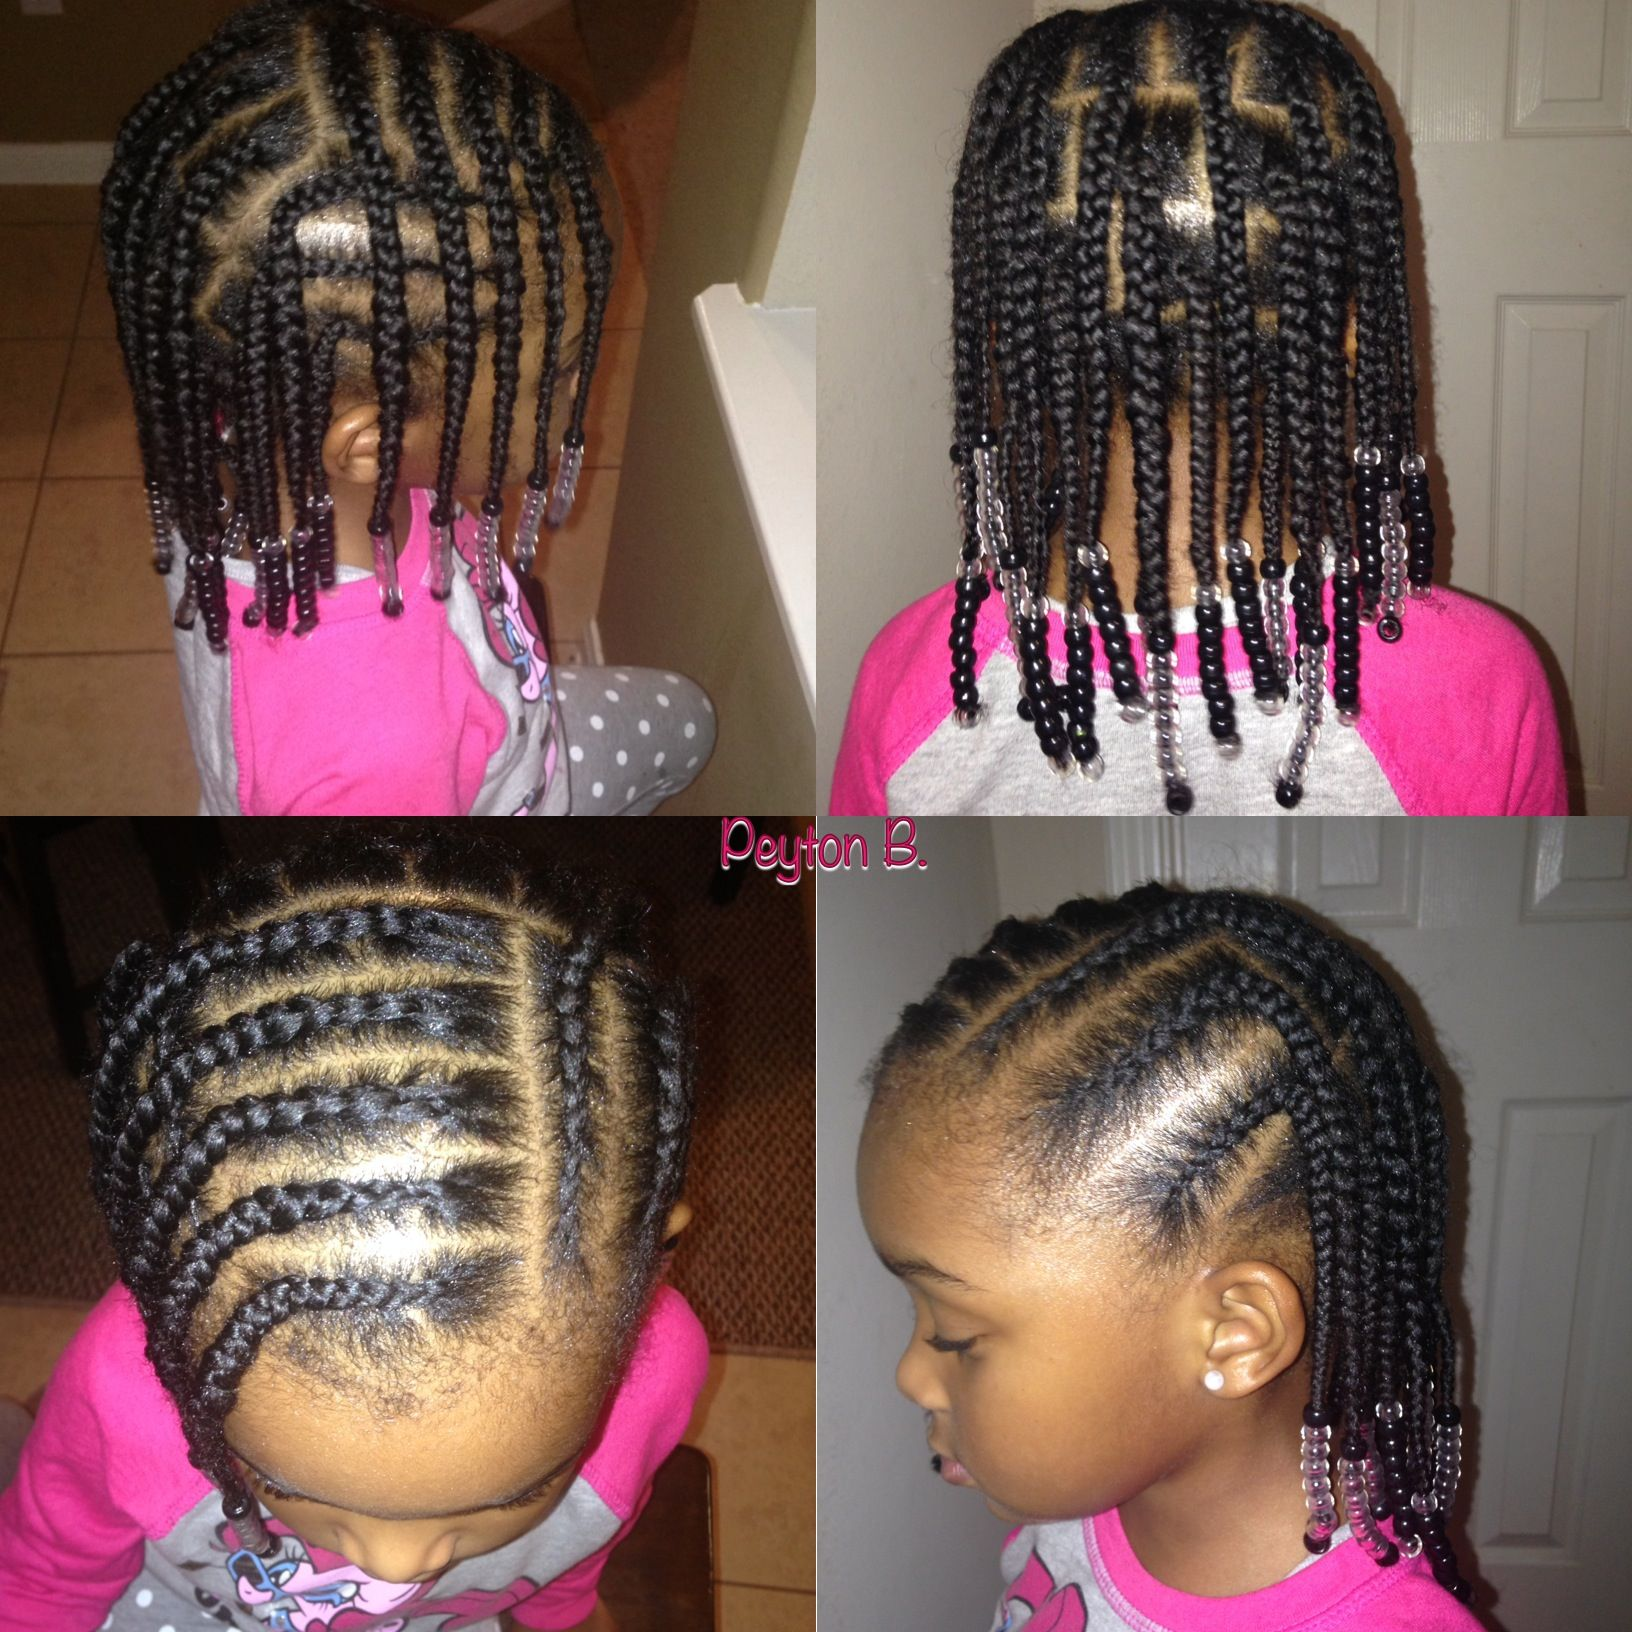 Cute hairstyles for kids hairstyleforblackwomen.net 131